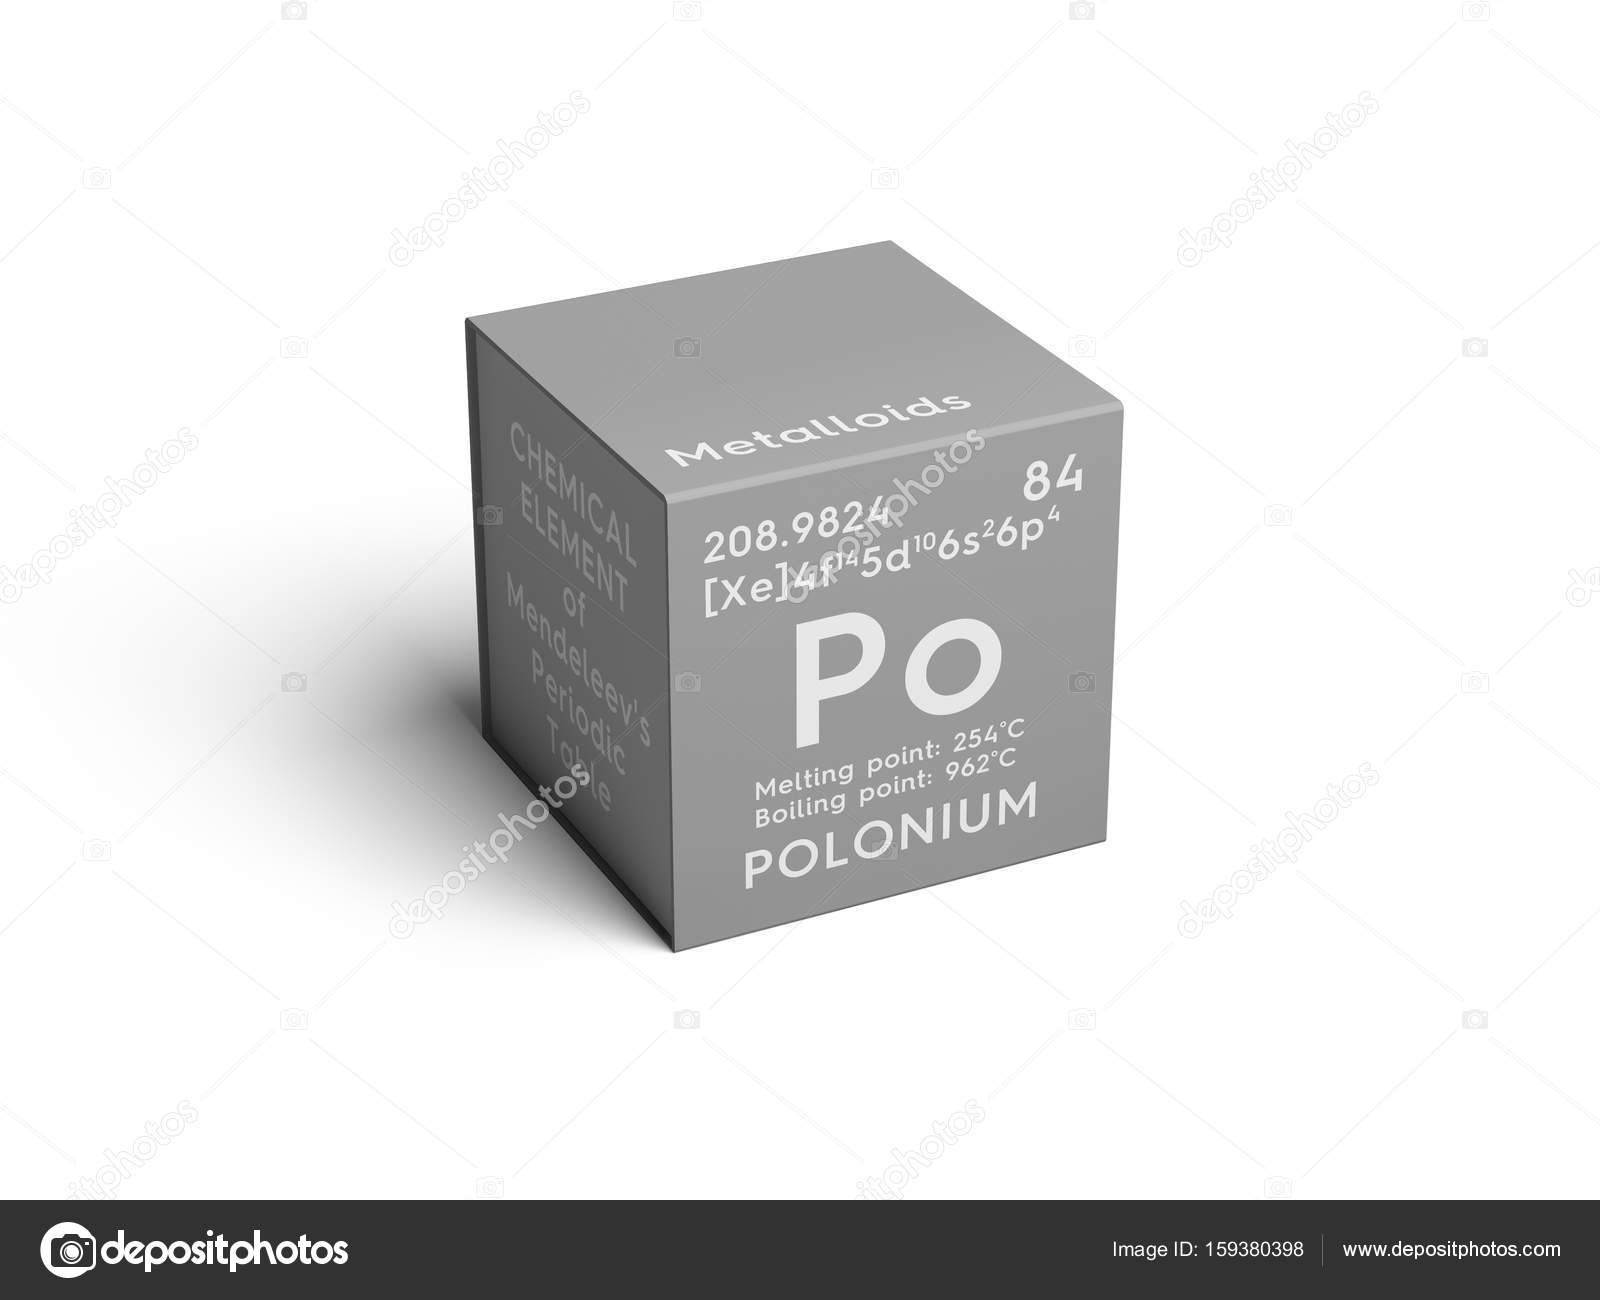 Polonium metalloids chemical element of mendeleevs periodic polonium metalloids chemical element of mendeleevs periodic table polonium in square cube creative concept photo by sanches812 gamestrikefo Choice Image